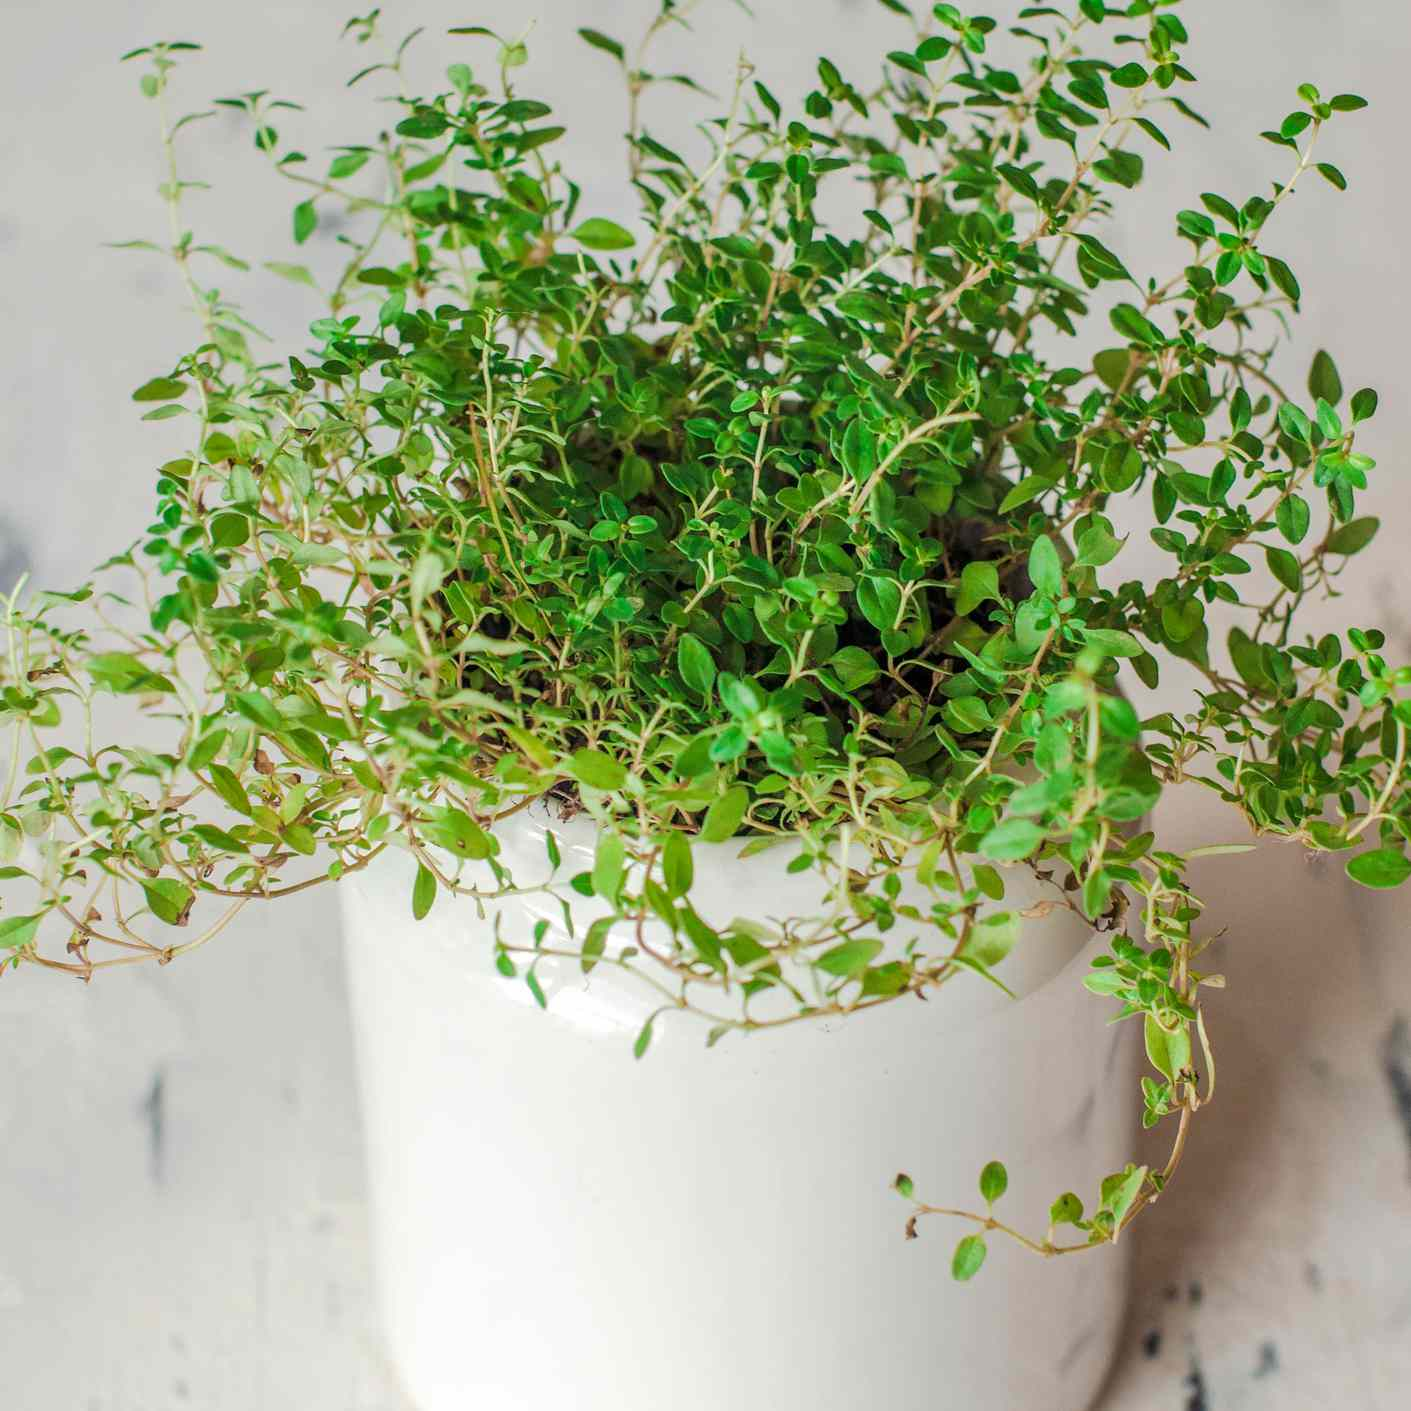 A close up view of thyme plant on a white pot